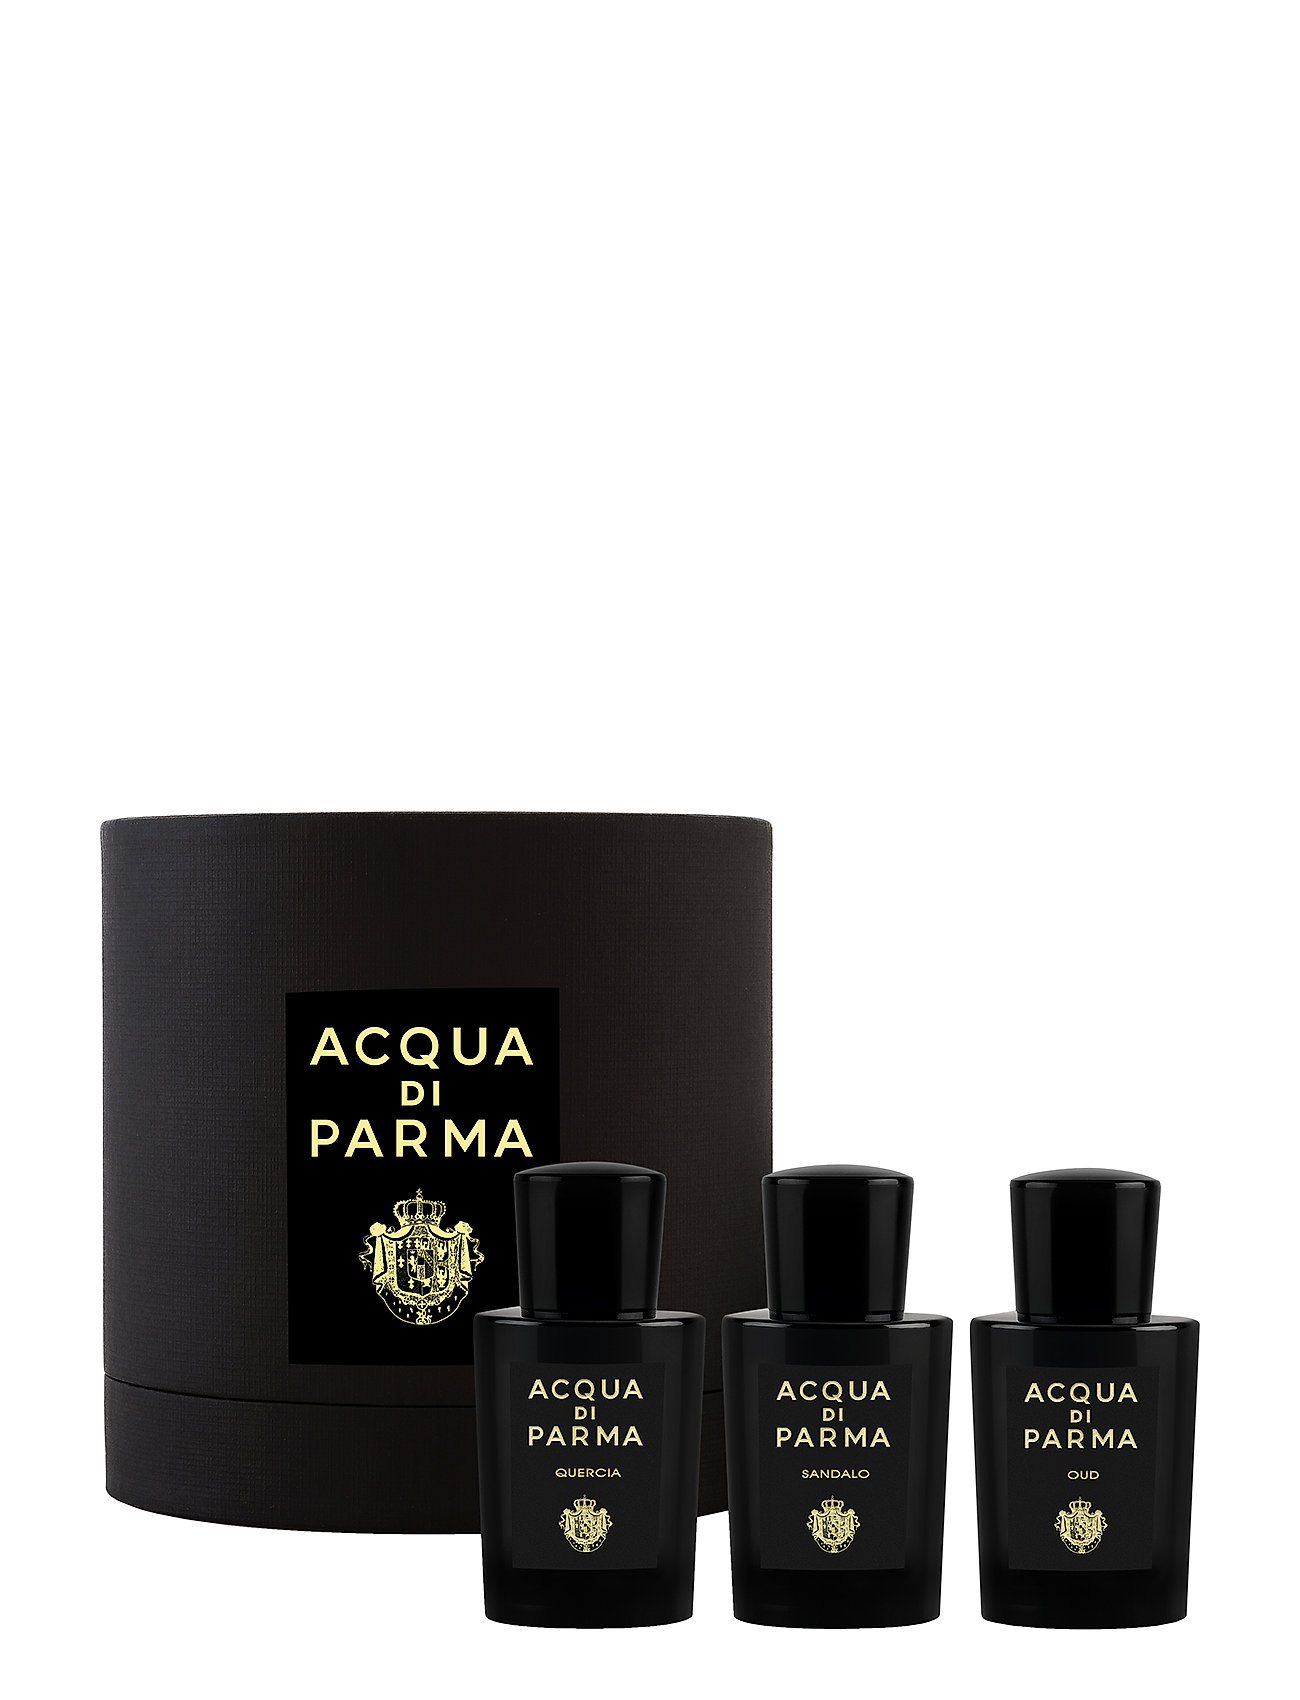 Acqua di Parma Signature Discovery set 2019 - NO COLOUR